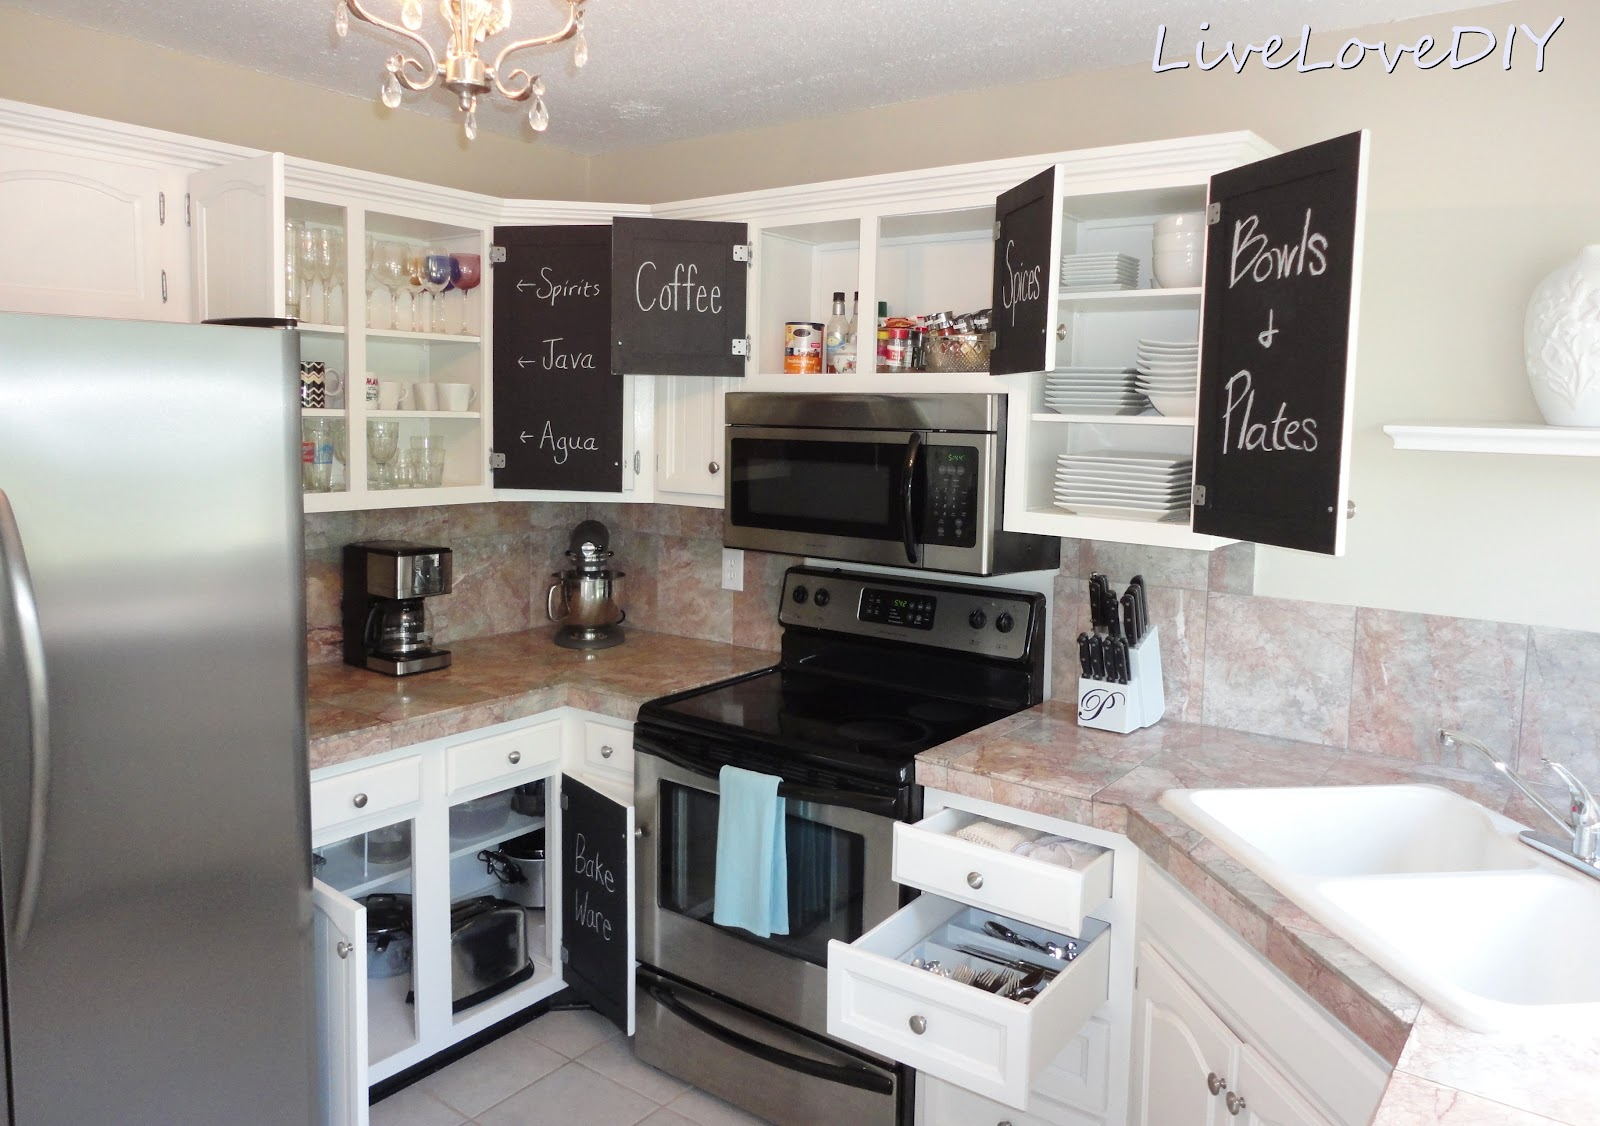 LiveLoveDIY The Chalkboard Paint Kitchen Cabinet Makeover - Diy kitchen cabinets makeover